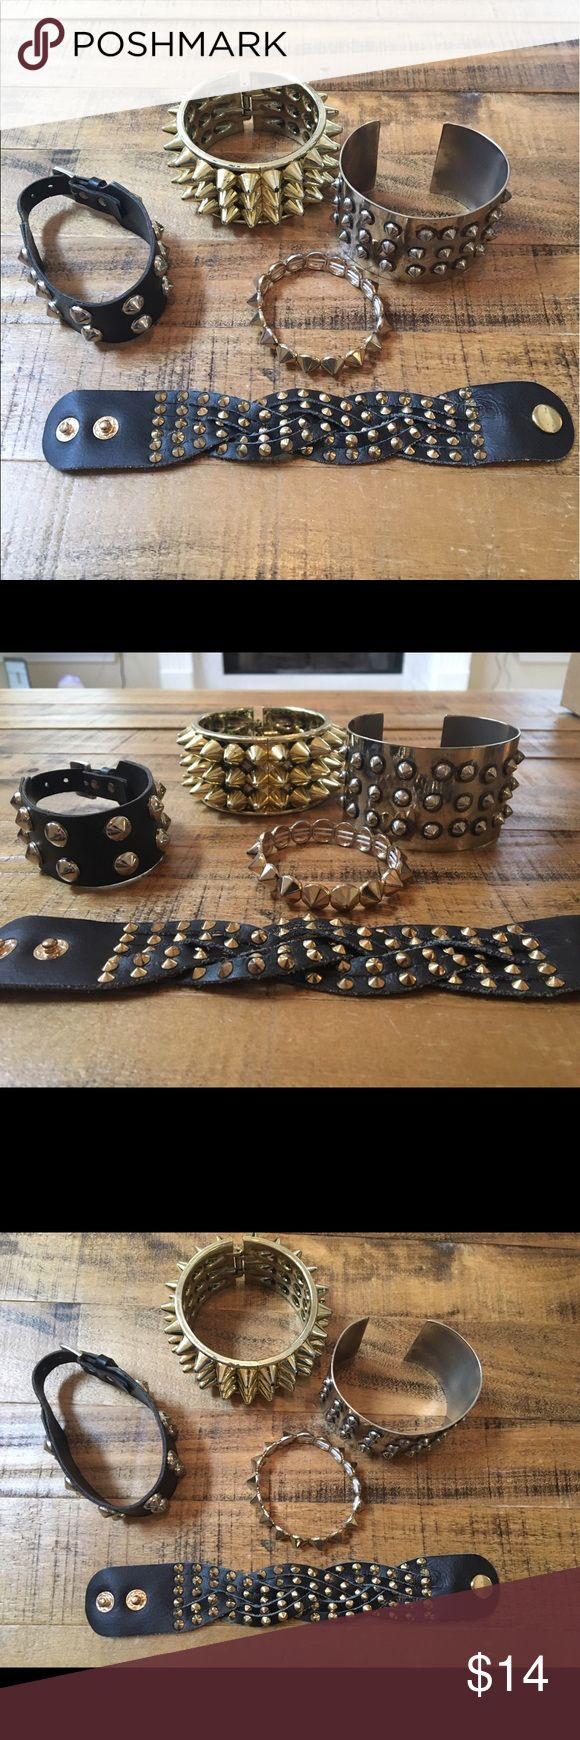 Spiked and studded bracelet collection Collection includes:  1.  Silver metal gauntlet with metal spikes.  2. Gold colored plastic spiked gauntlet, in excellent condition with only slight wear at the edges of some of the spikes. 3. Goldtone single row Metal spikes on an elastic cord.  4. Vintage black woven leather snap closure bracelet with small metal gold tone studs. 5. Faux leather two row studded bracelet with watch strap style closure. Faux leather is cracked and loosening slightly…